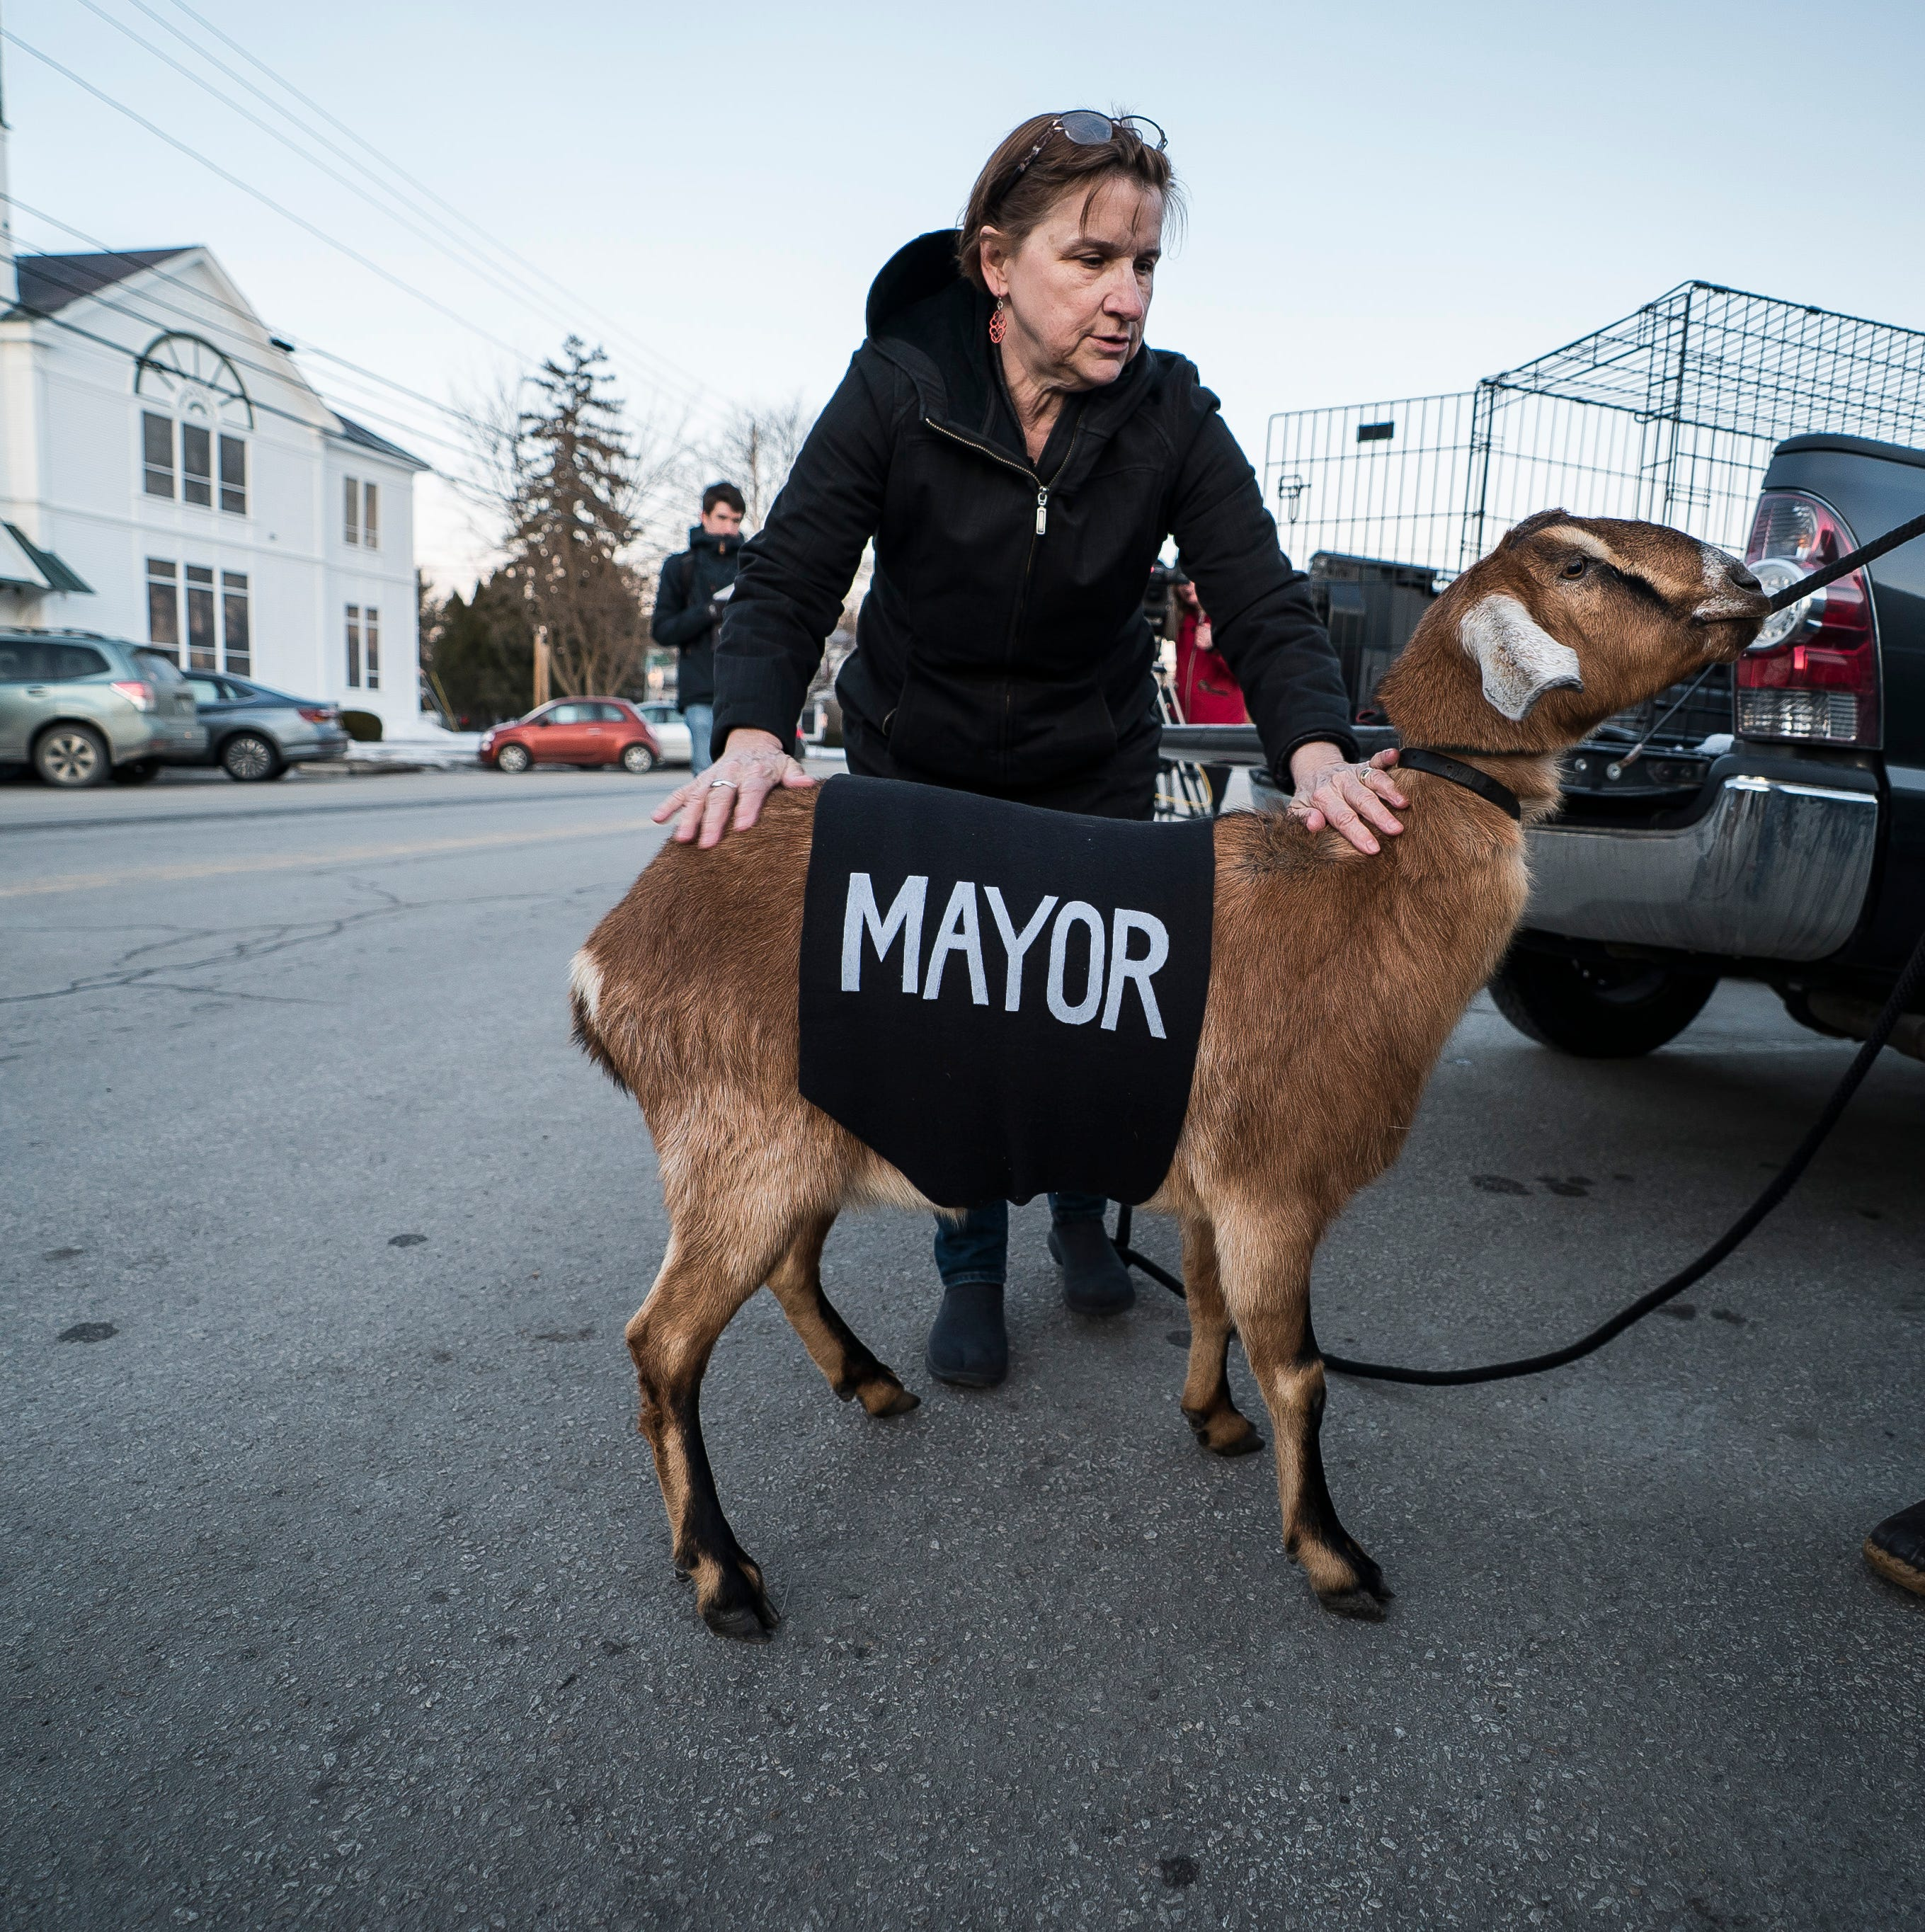 Lincoln the goat sworn in as Fair Haven's new mayor, immediately defecates